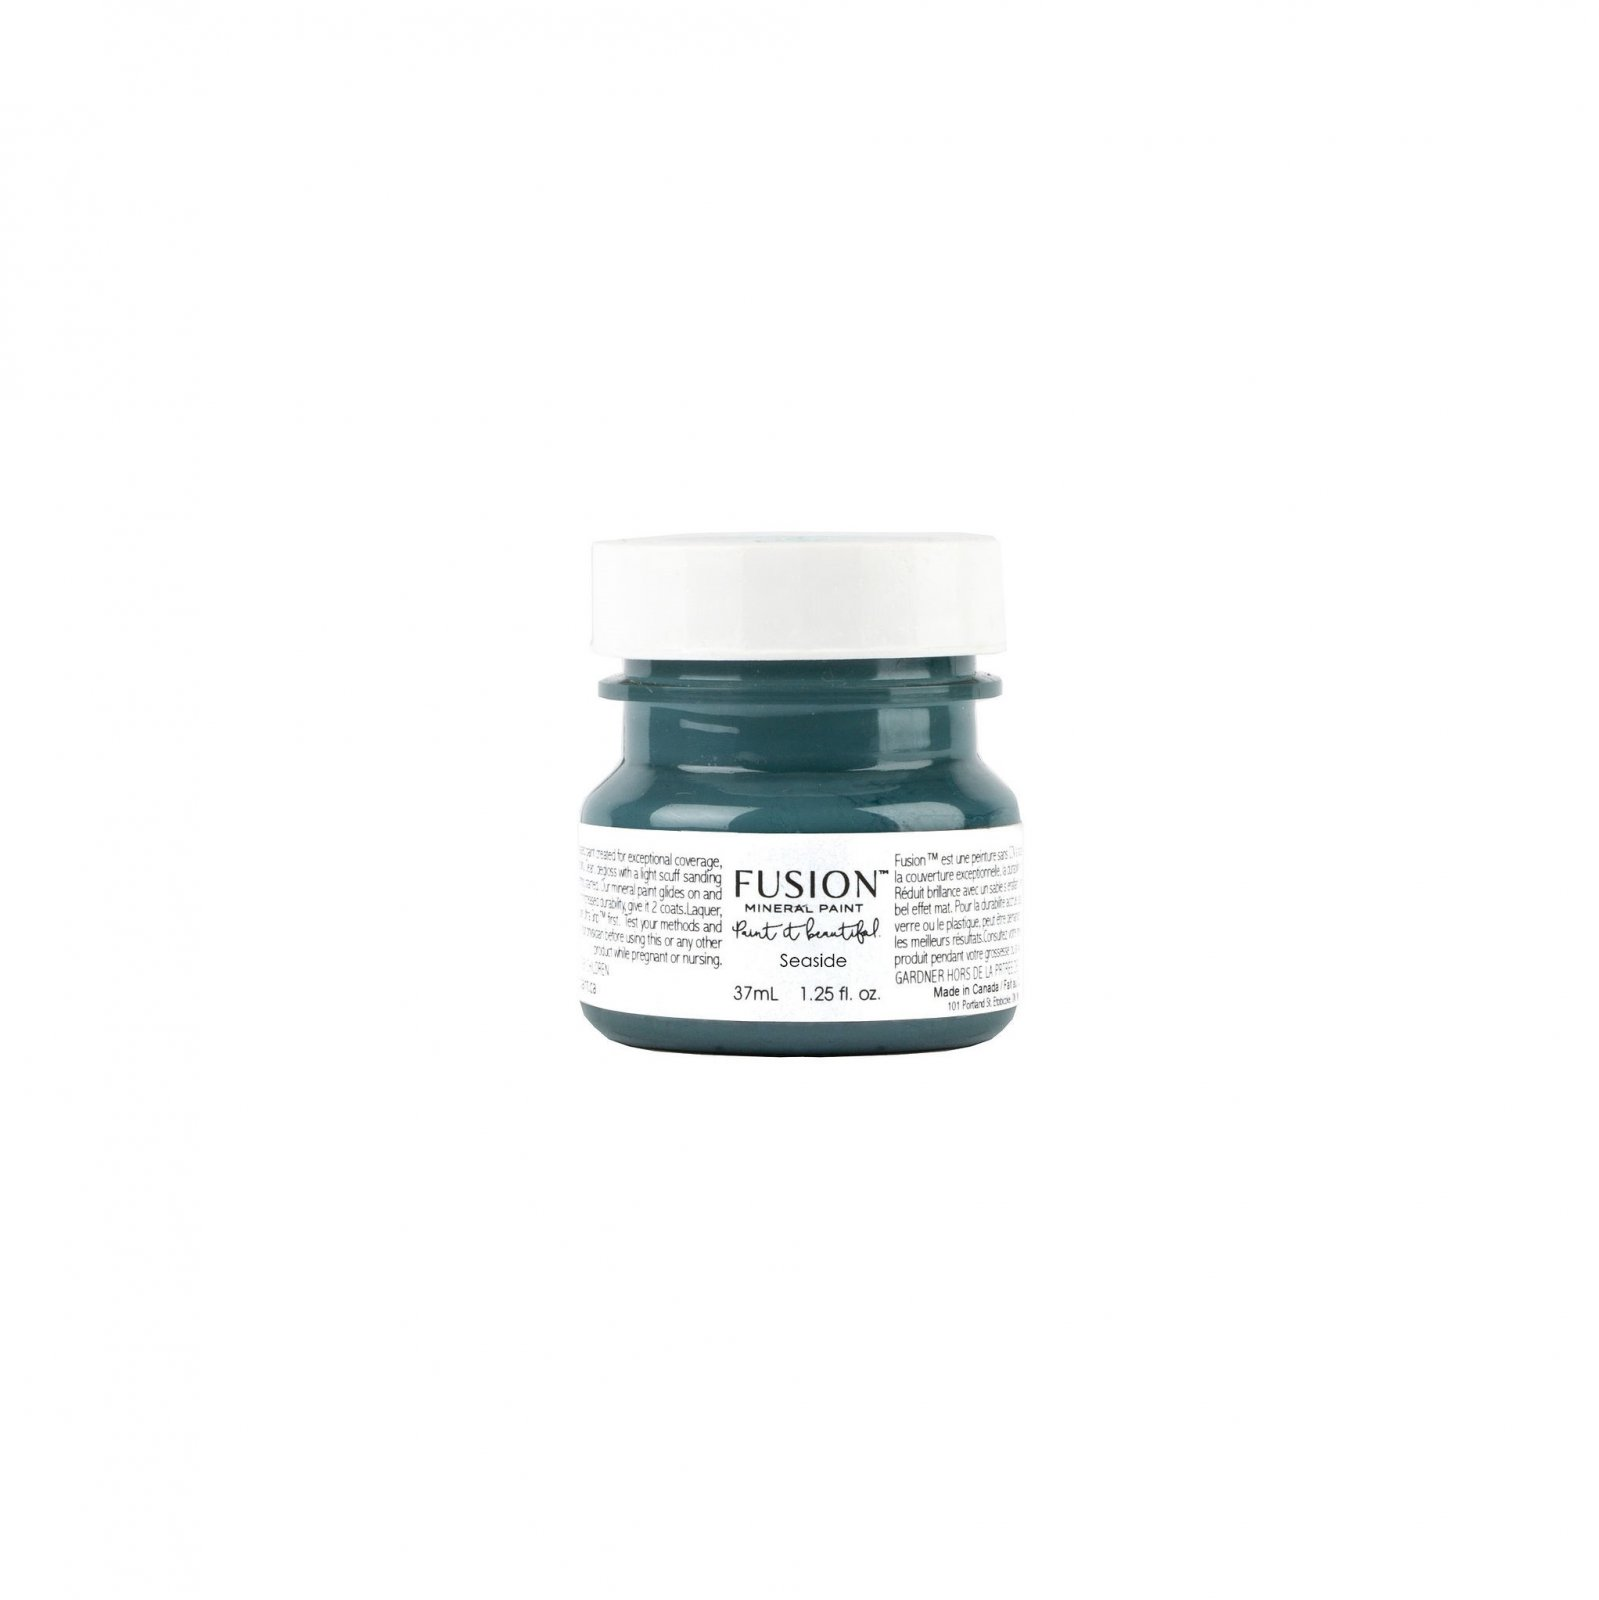 Seaside Tester - Penney & Co. Collection Fusion Mineral Paint